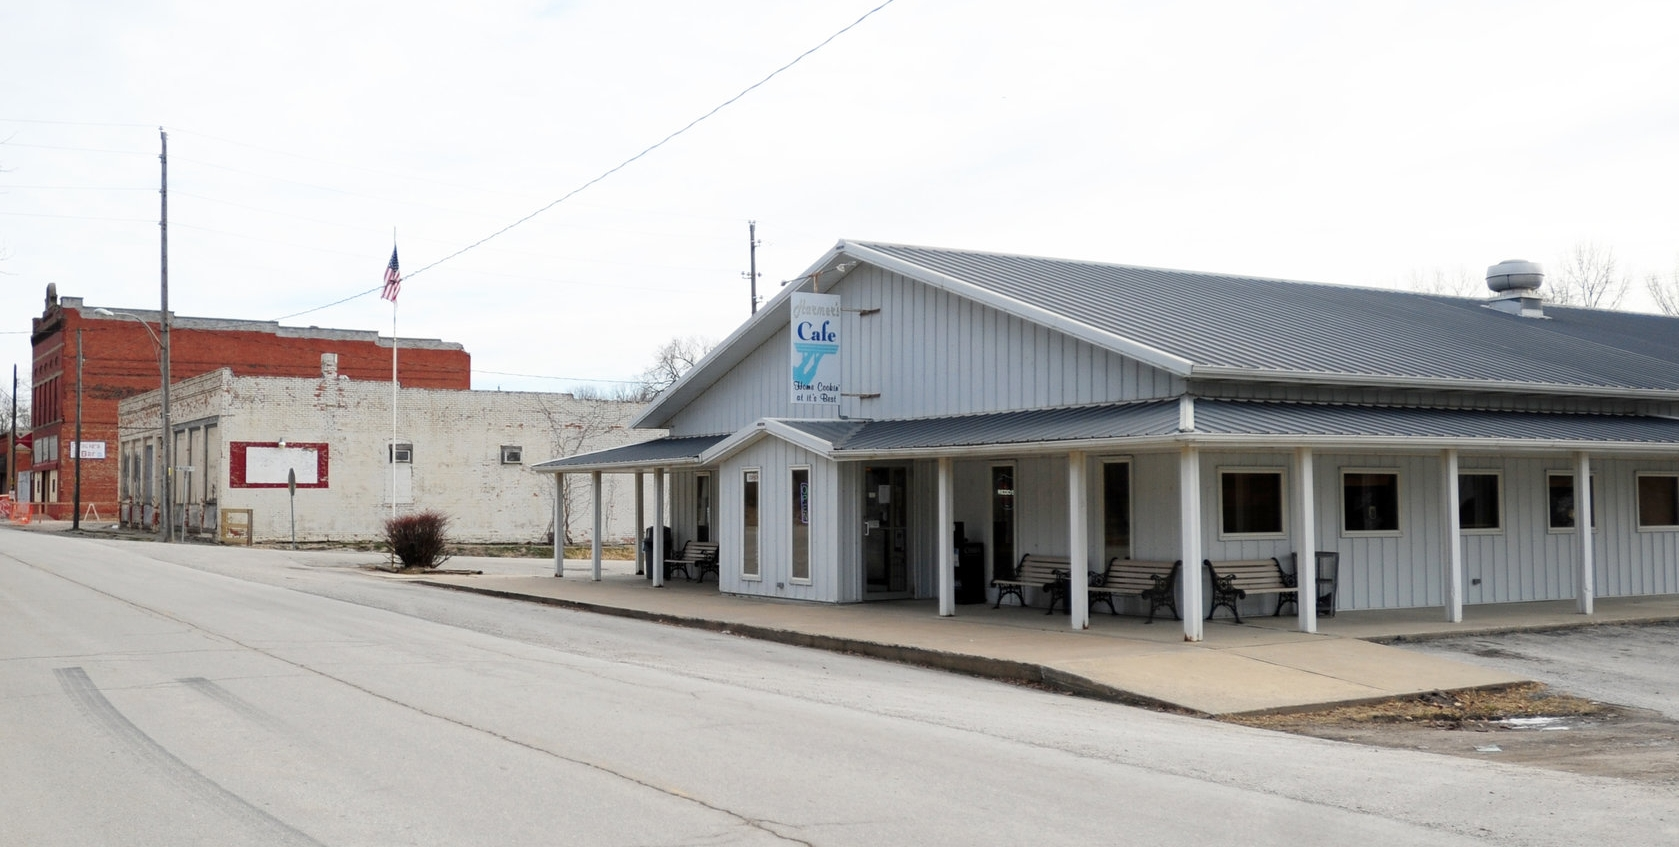 NICK INGRAM/Citizen photo Harmer's Cafe, right, in Edgerton, Mo. recently began serving beer and added bar hours. The decision came after Gracie's Bar, brick building at rear, closed in March due to structural issues with the building.